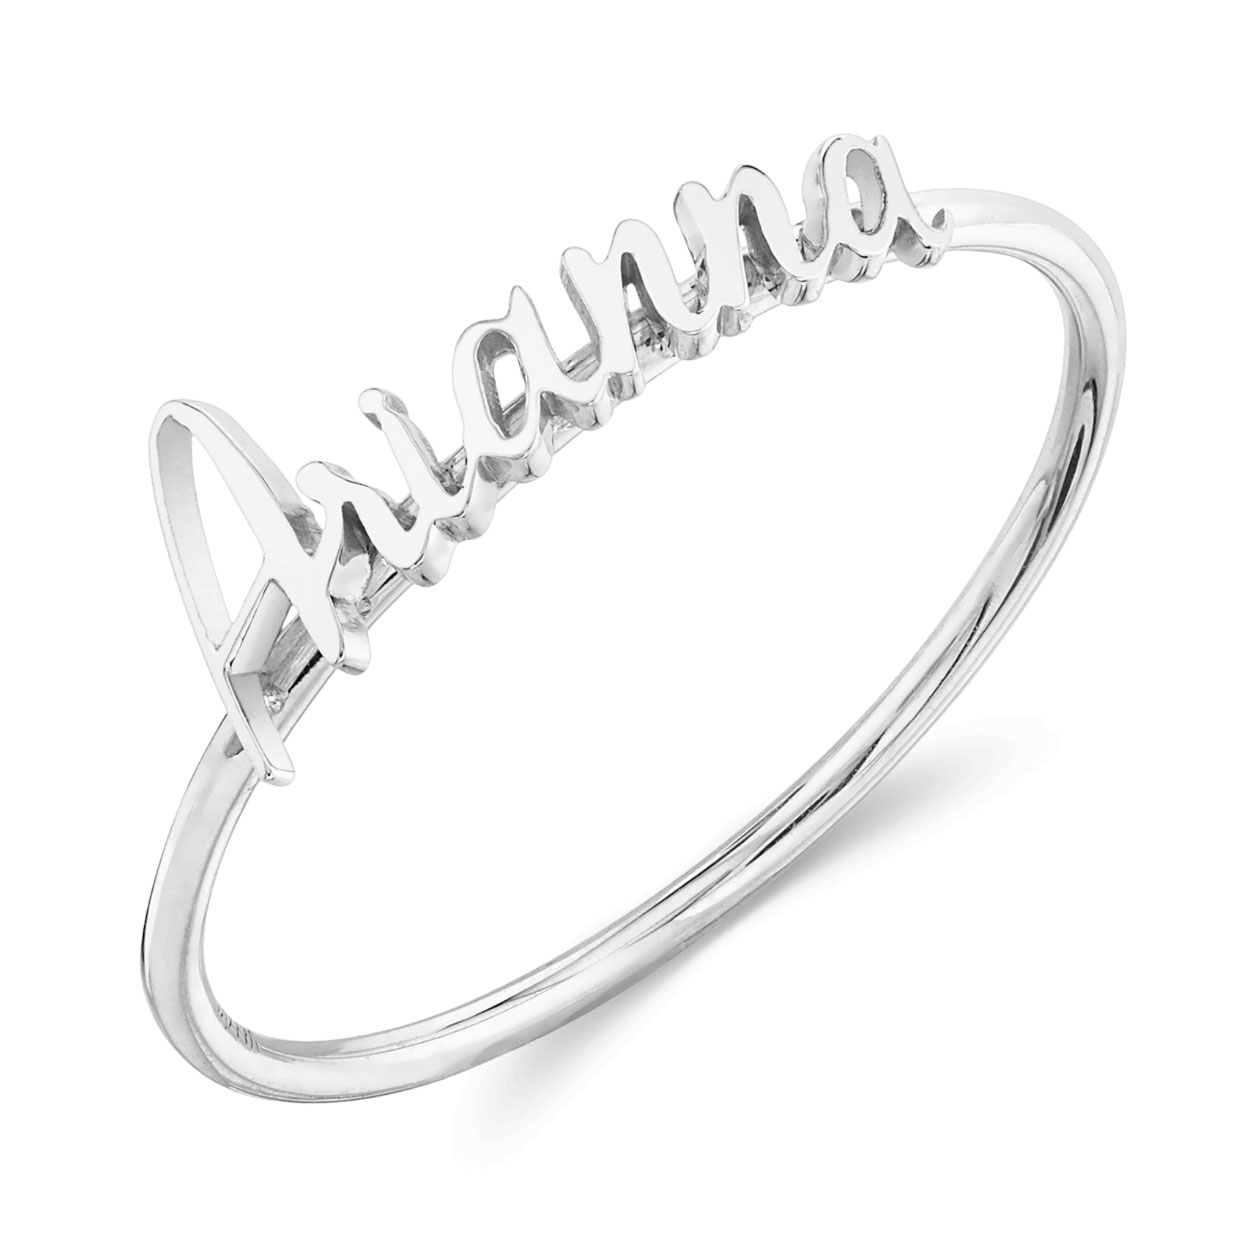 Galentine's Day gifts - Babygold Custom Name Ring